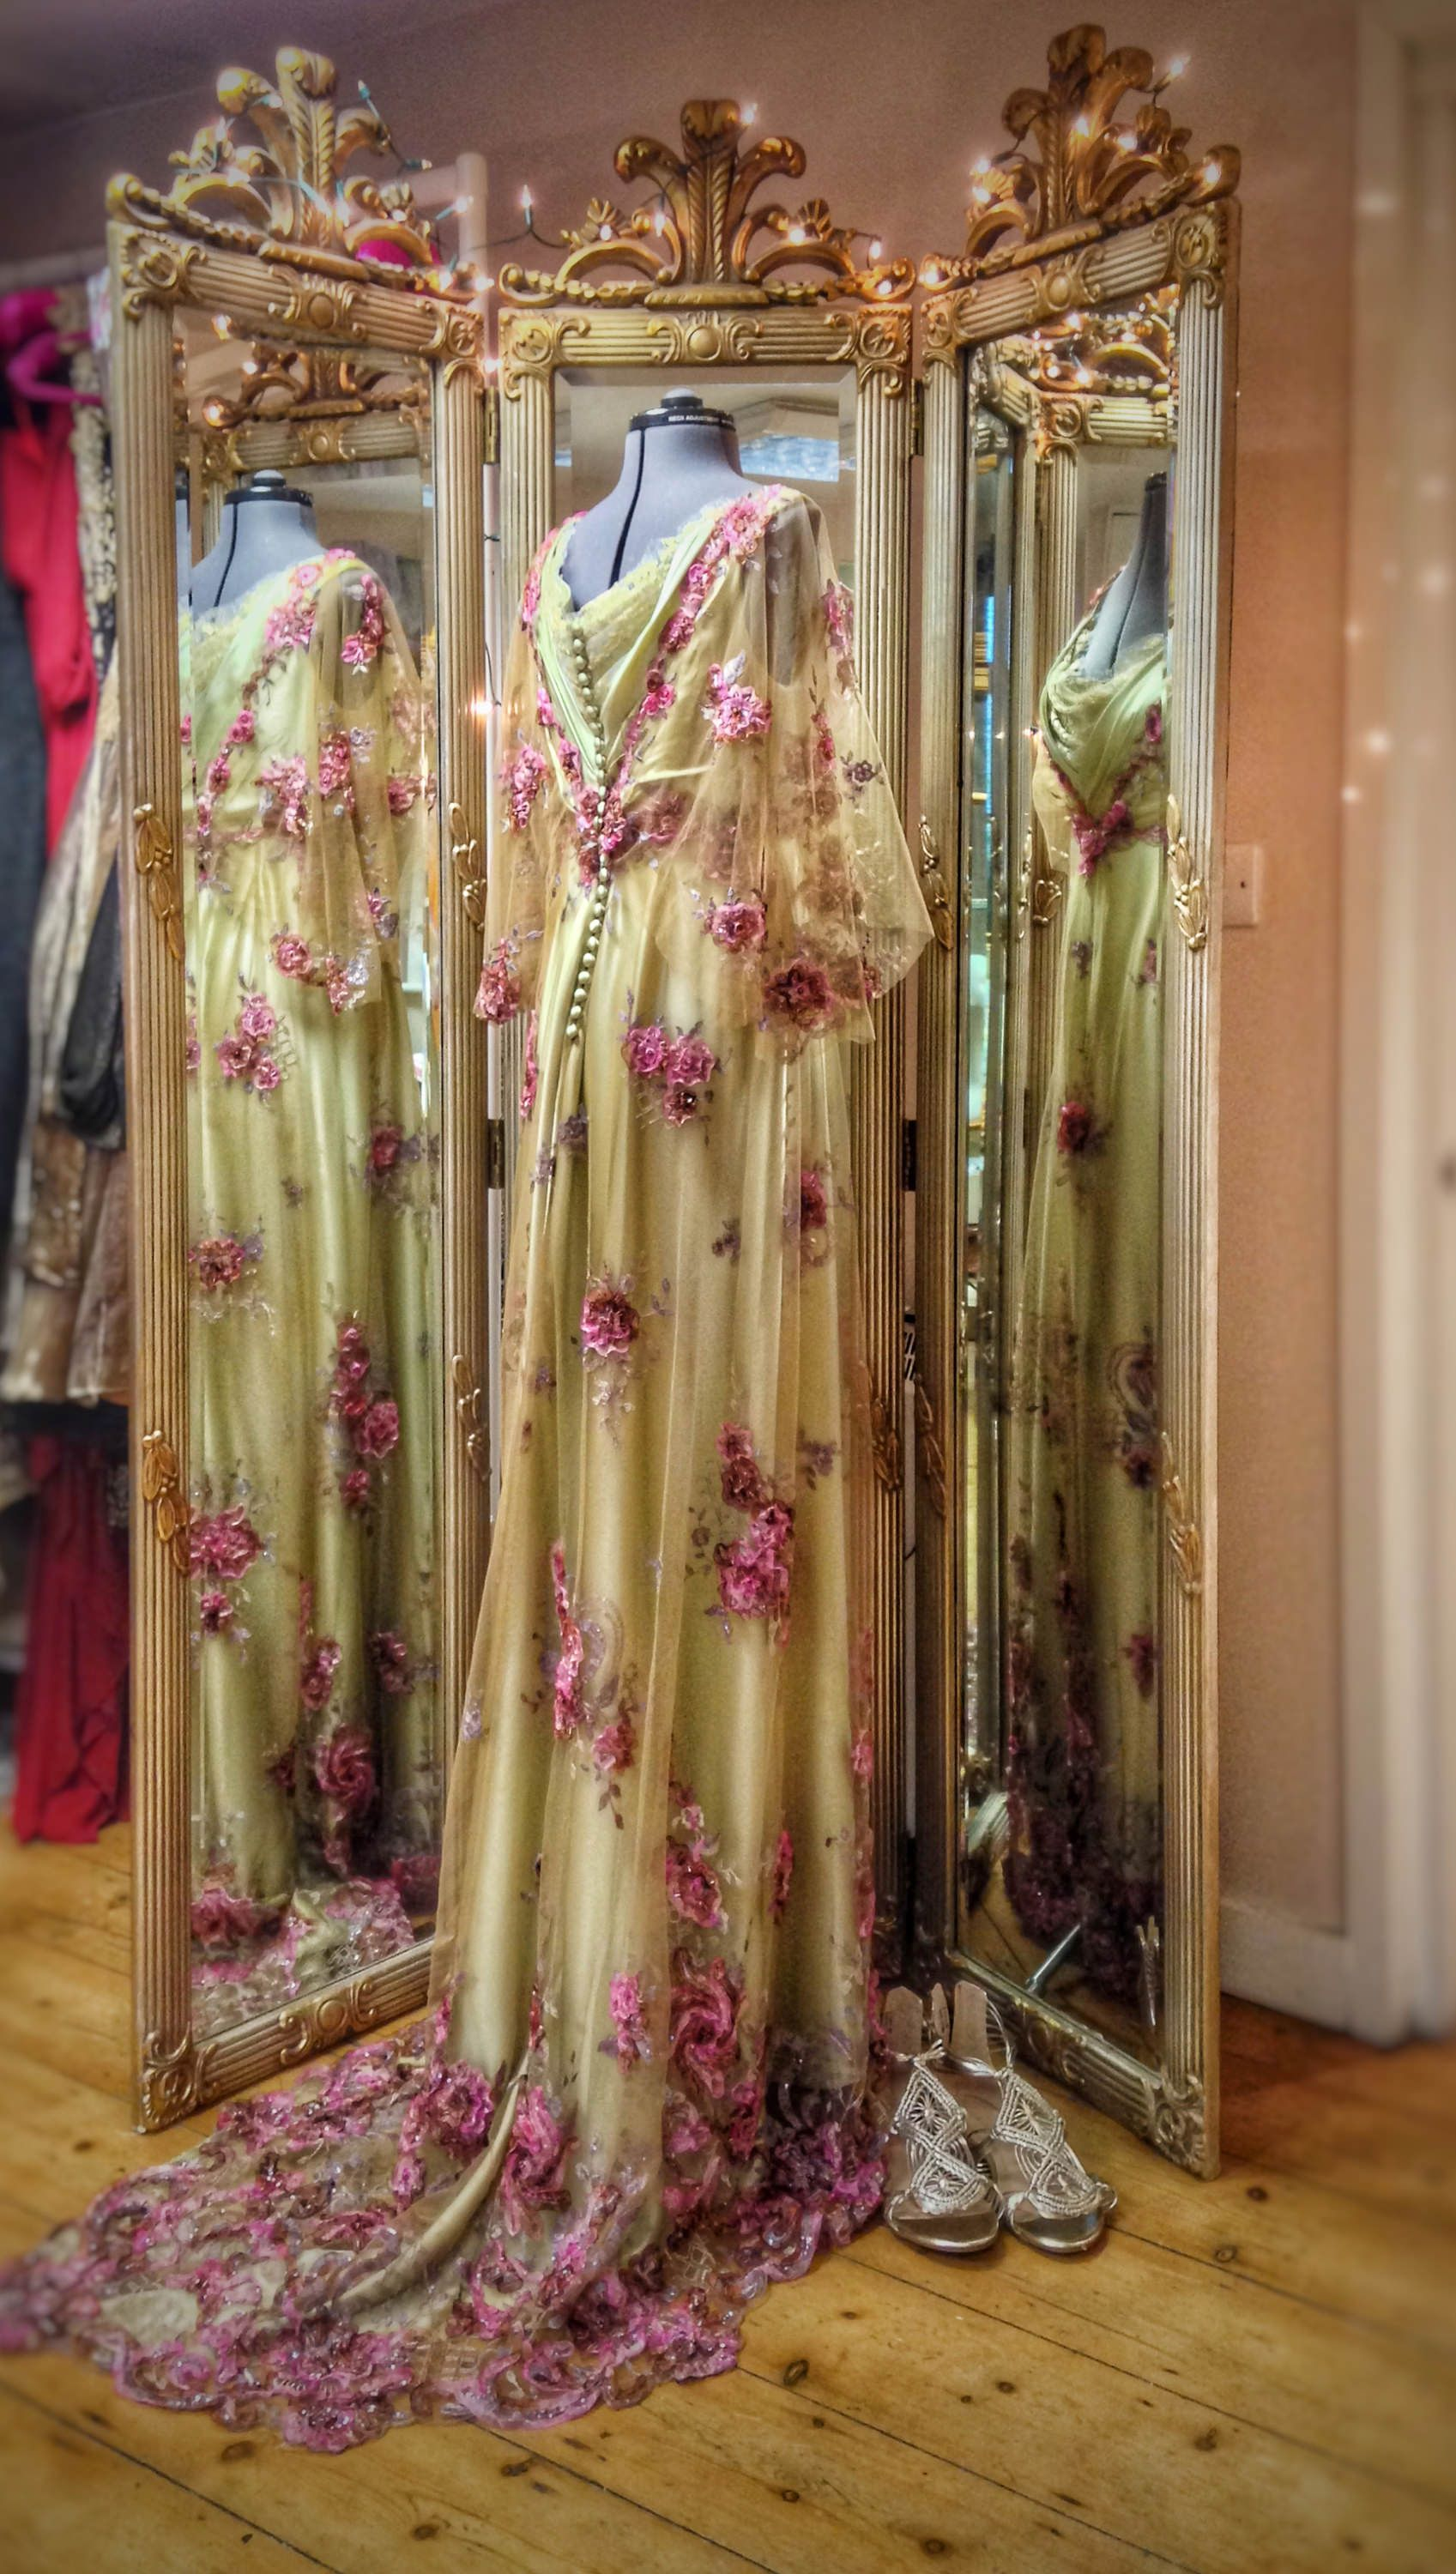 Belle epoque inspired floral wedding dress or evening gown